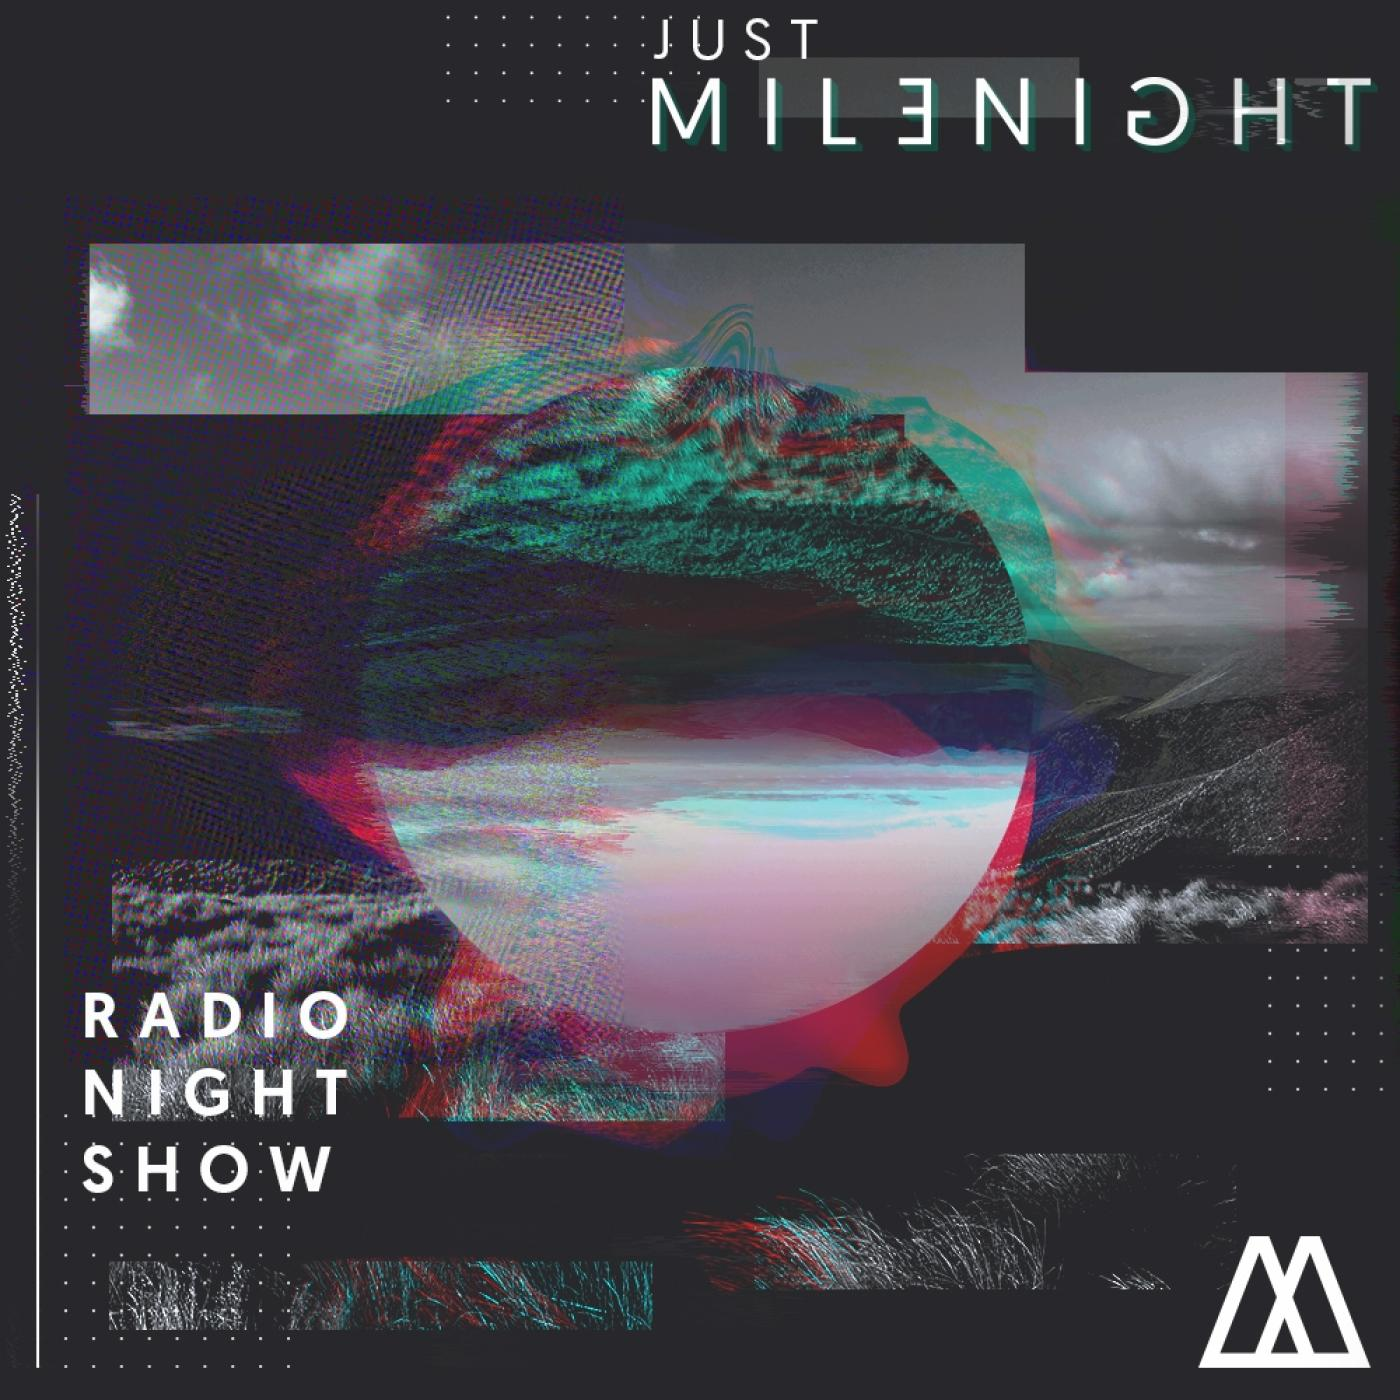 Radio Night Show - Milenight